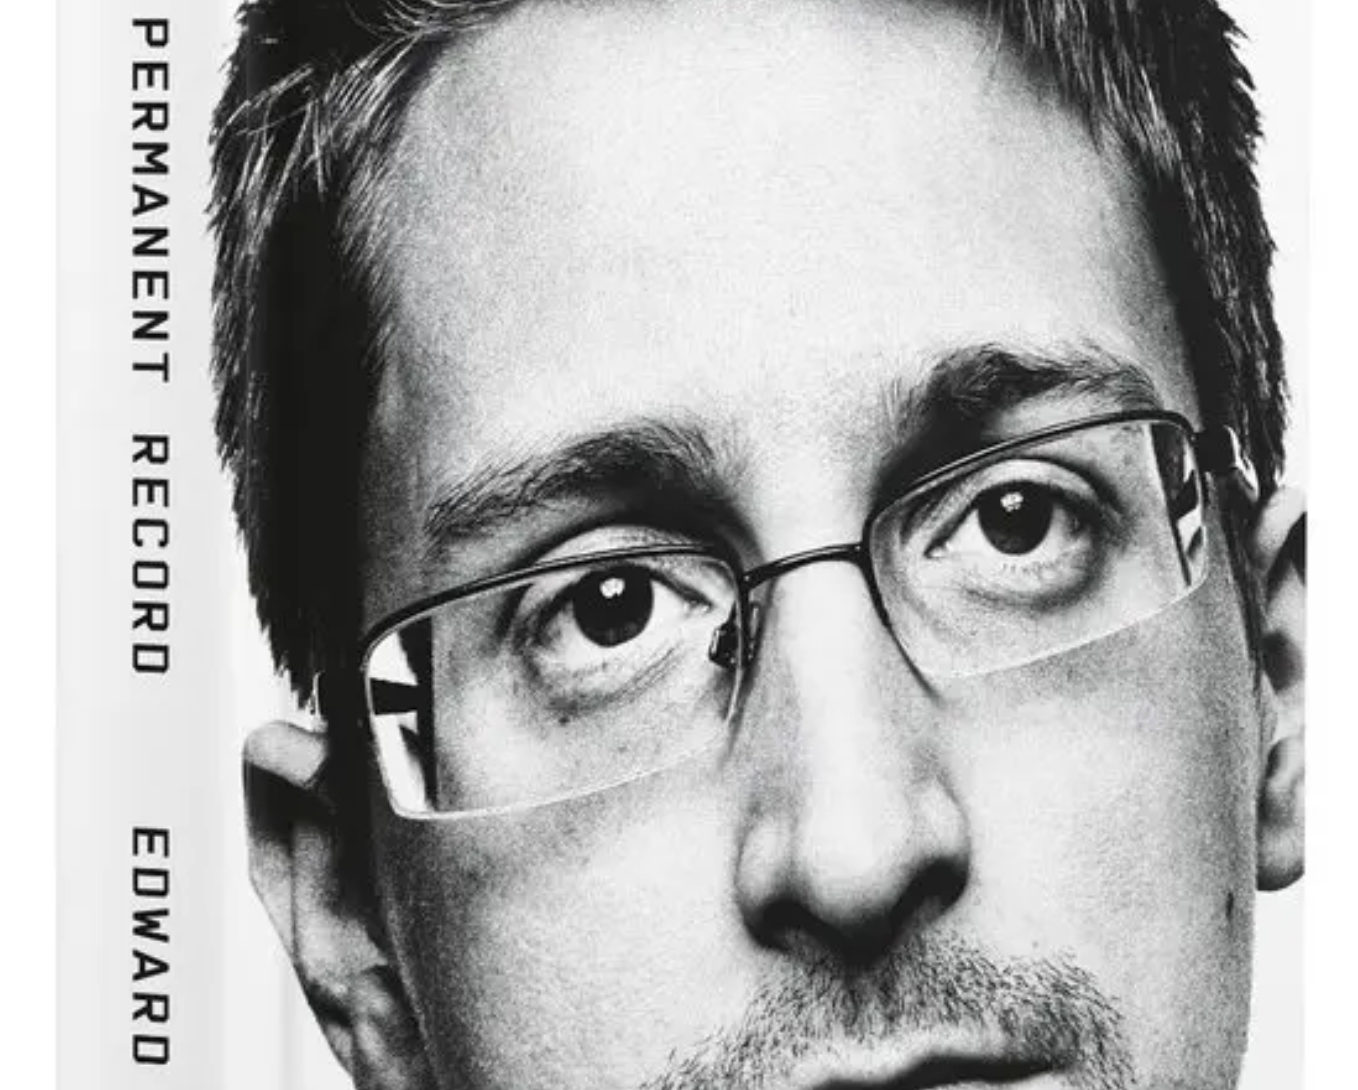 The U.S. is suing Snowden over the publication of his autobiography